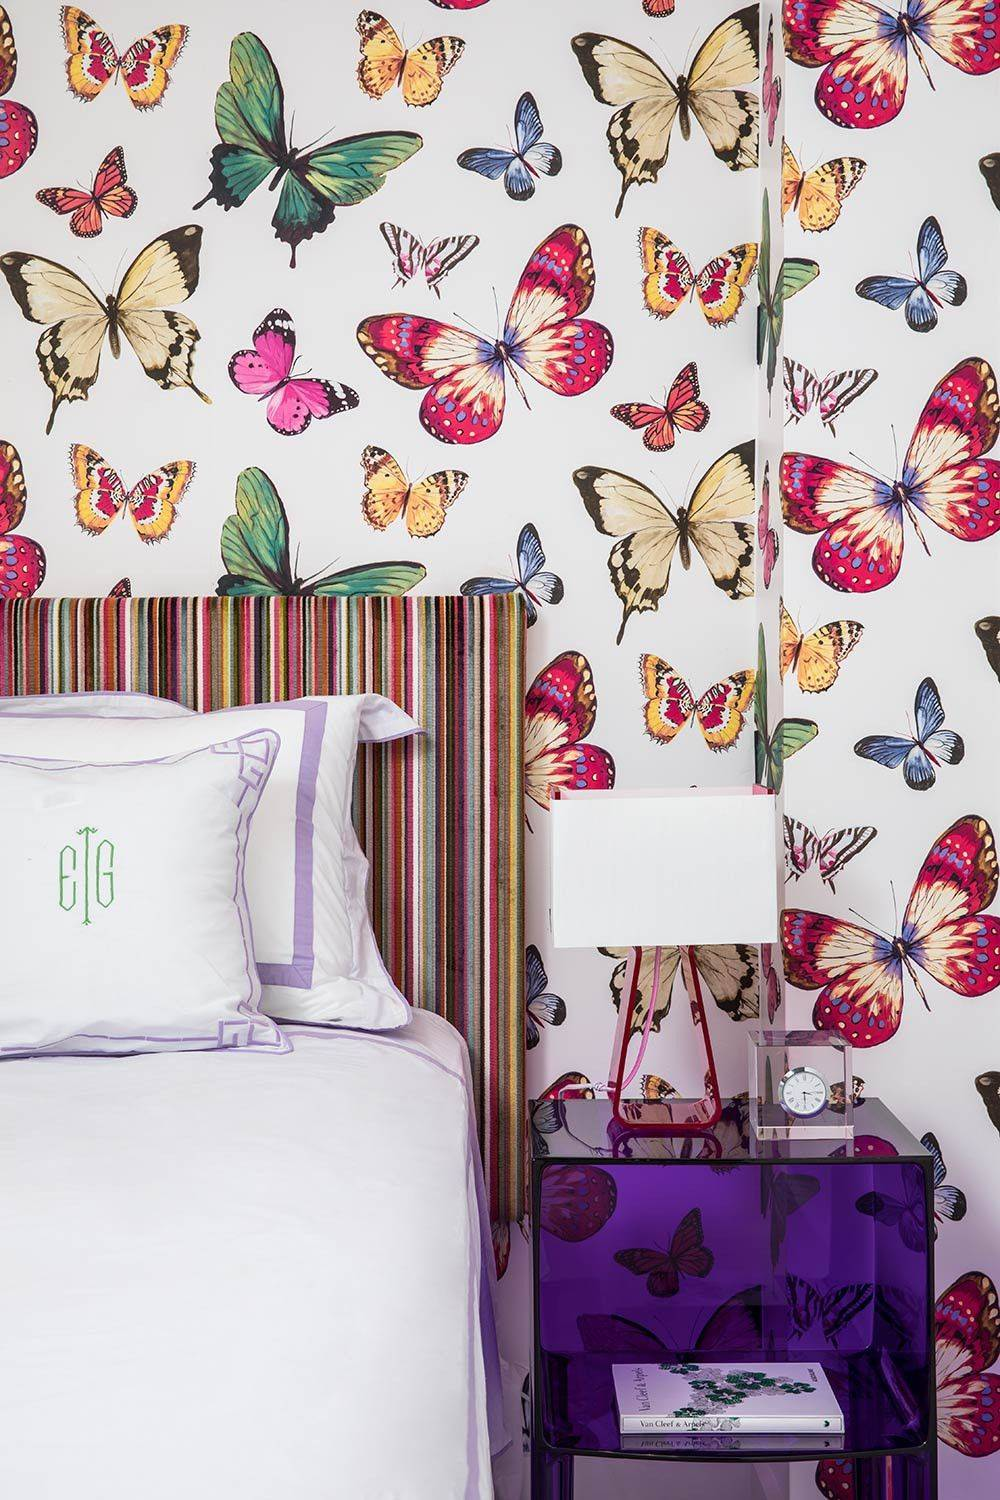 Multi-colored-butterflies-enliven-this-tiny-bedroom-in-white-58393